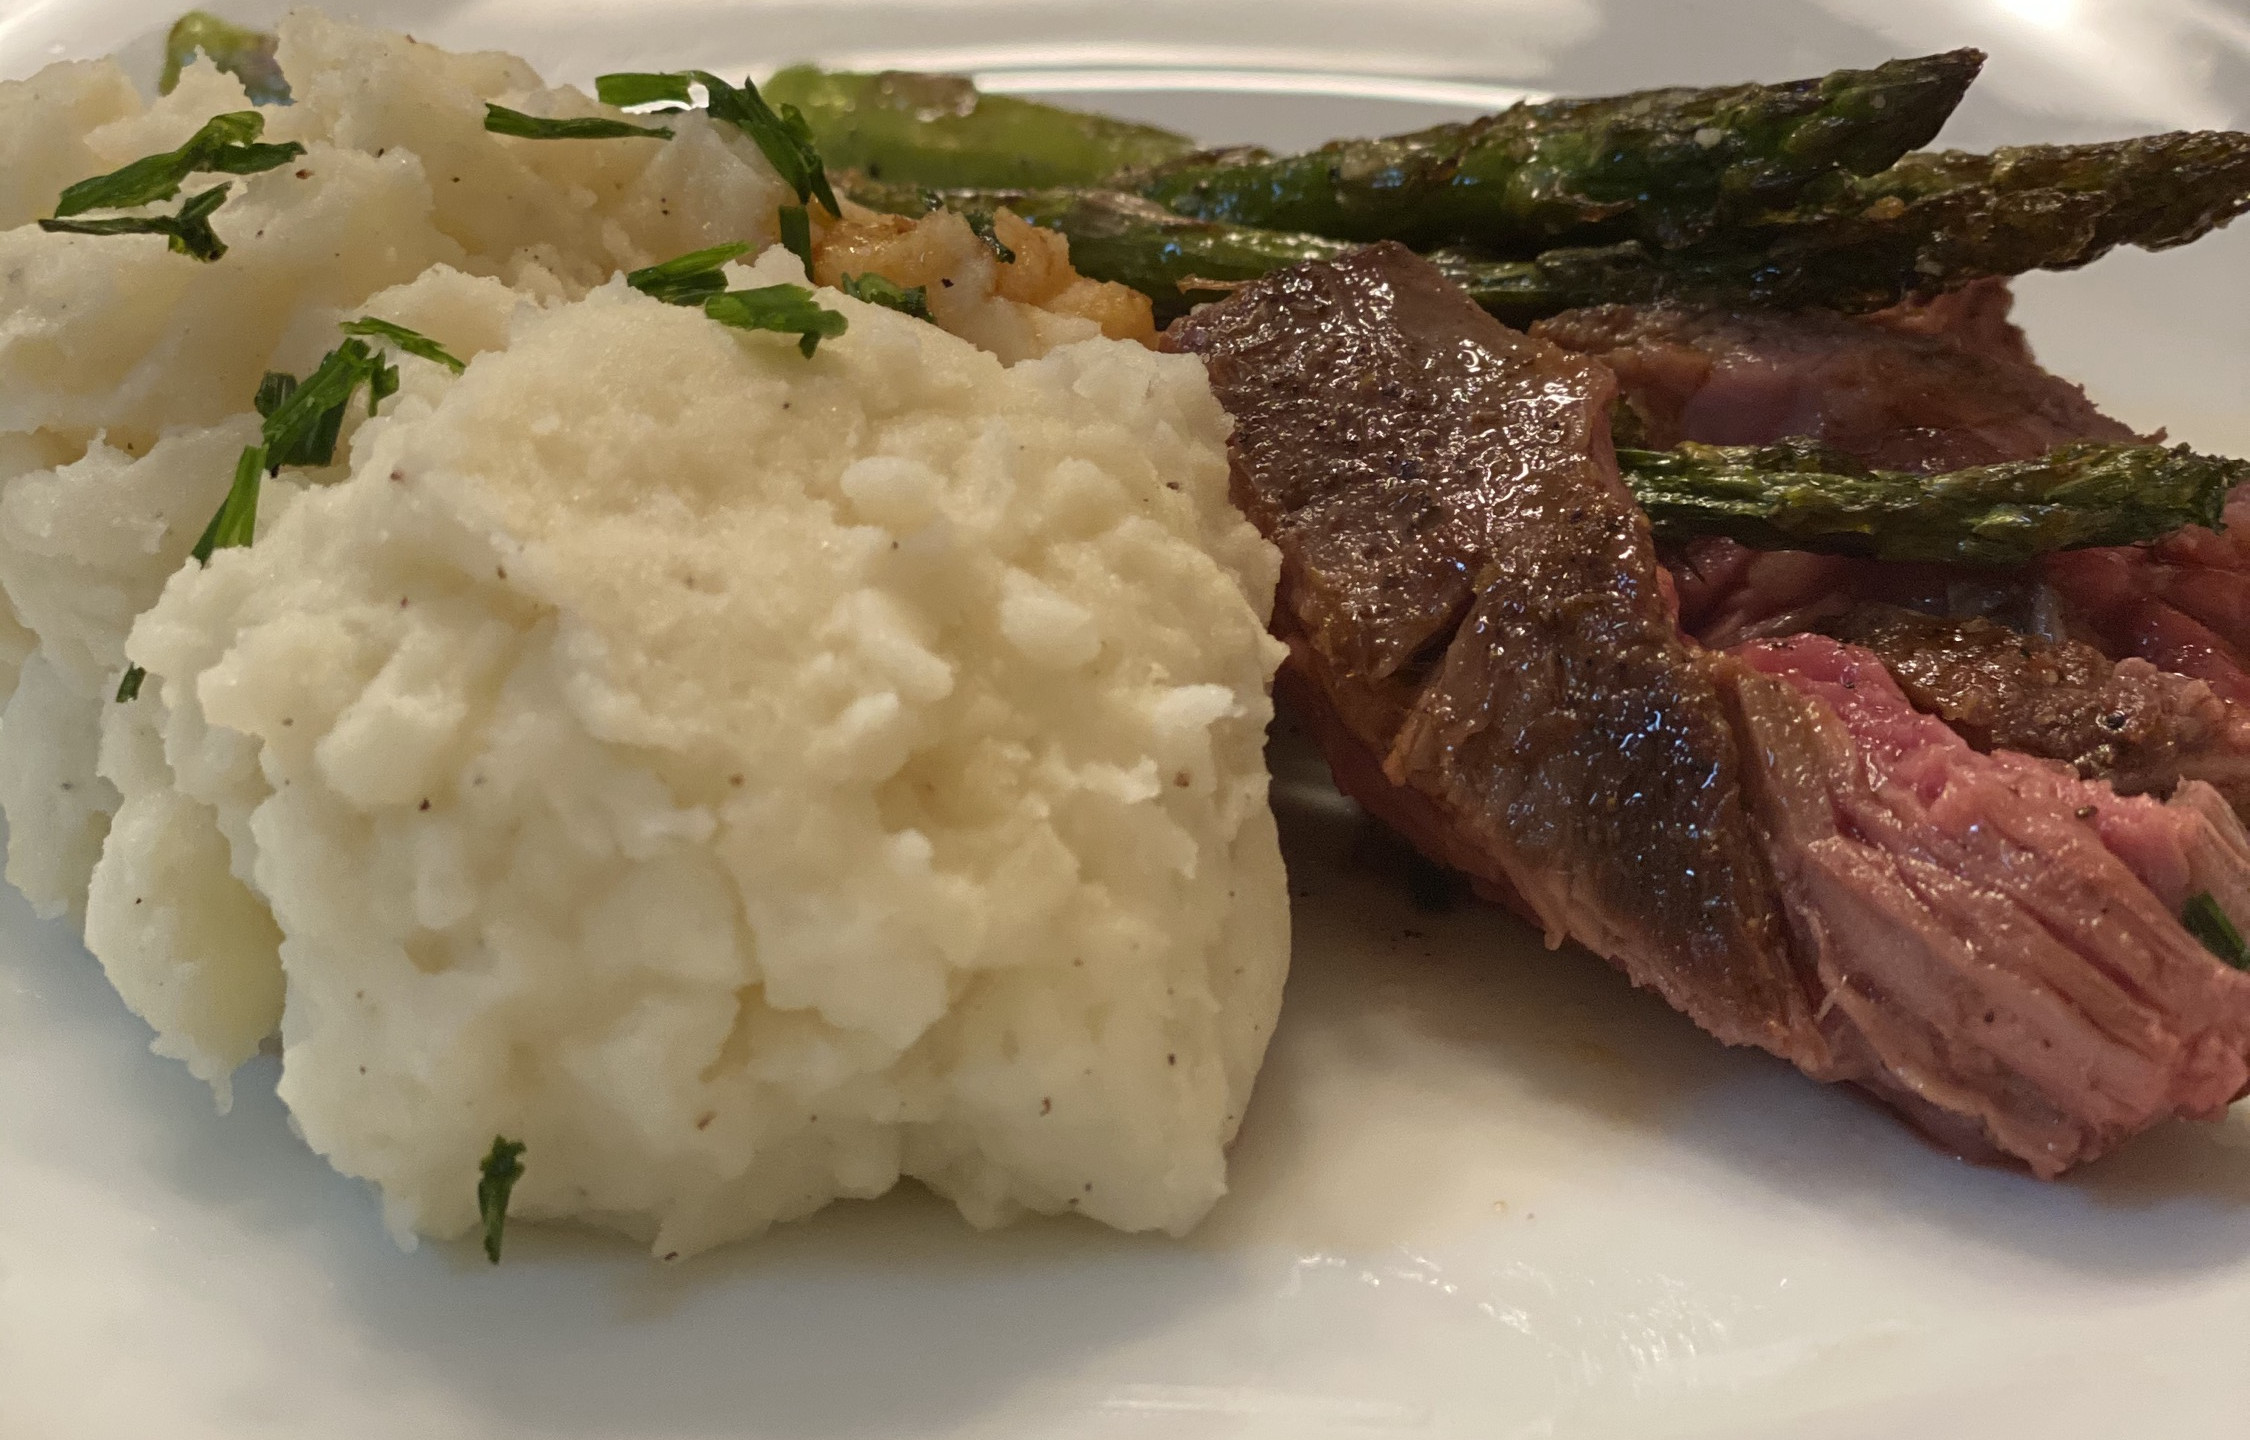 Bavette steak in a roasted garlic pan sauce, with mashed potatoes and asparagus